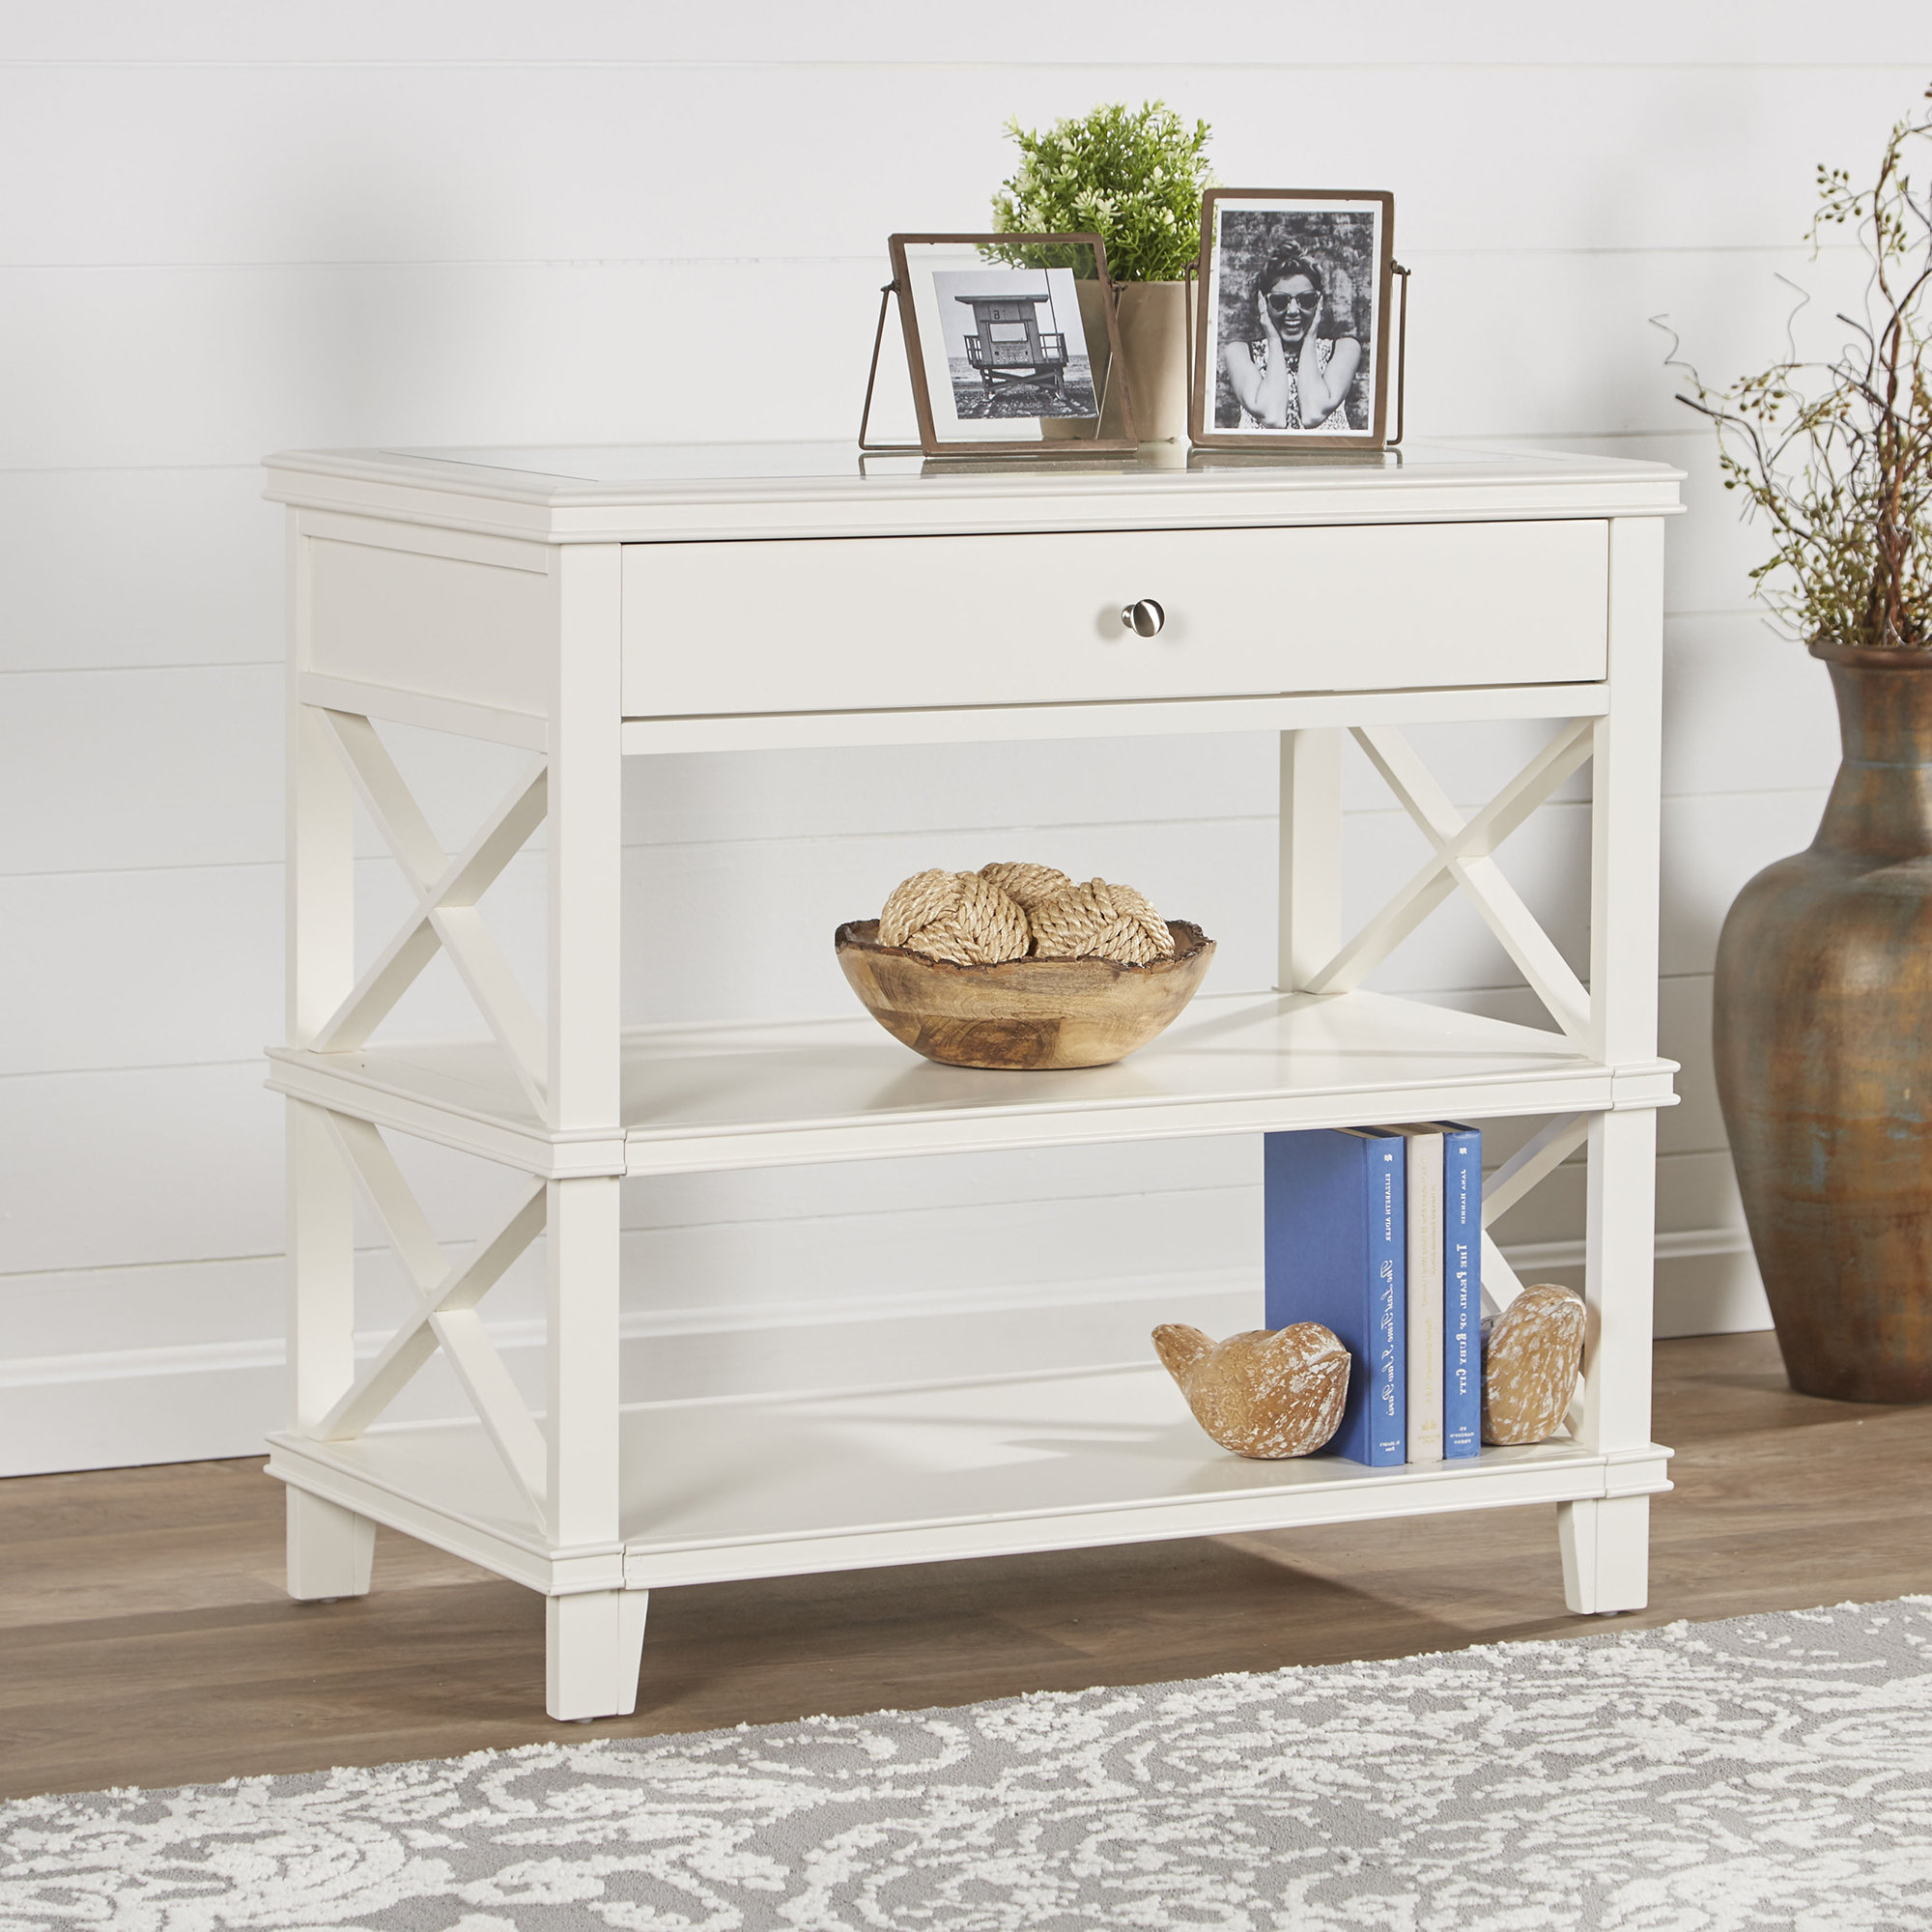 Bachelor's Chest Nightstands | Birch Lane With Raven Grey Tv Stands (Gallery 10 of 20)